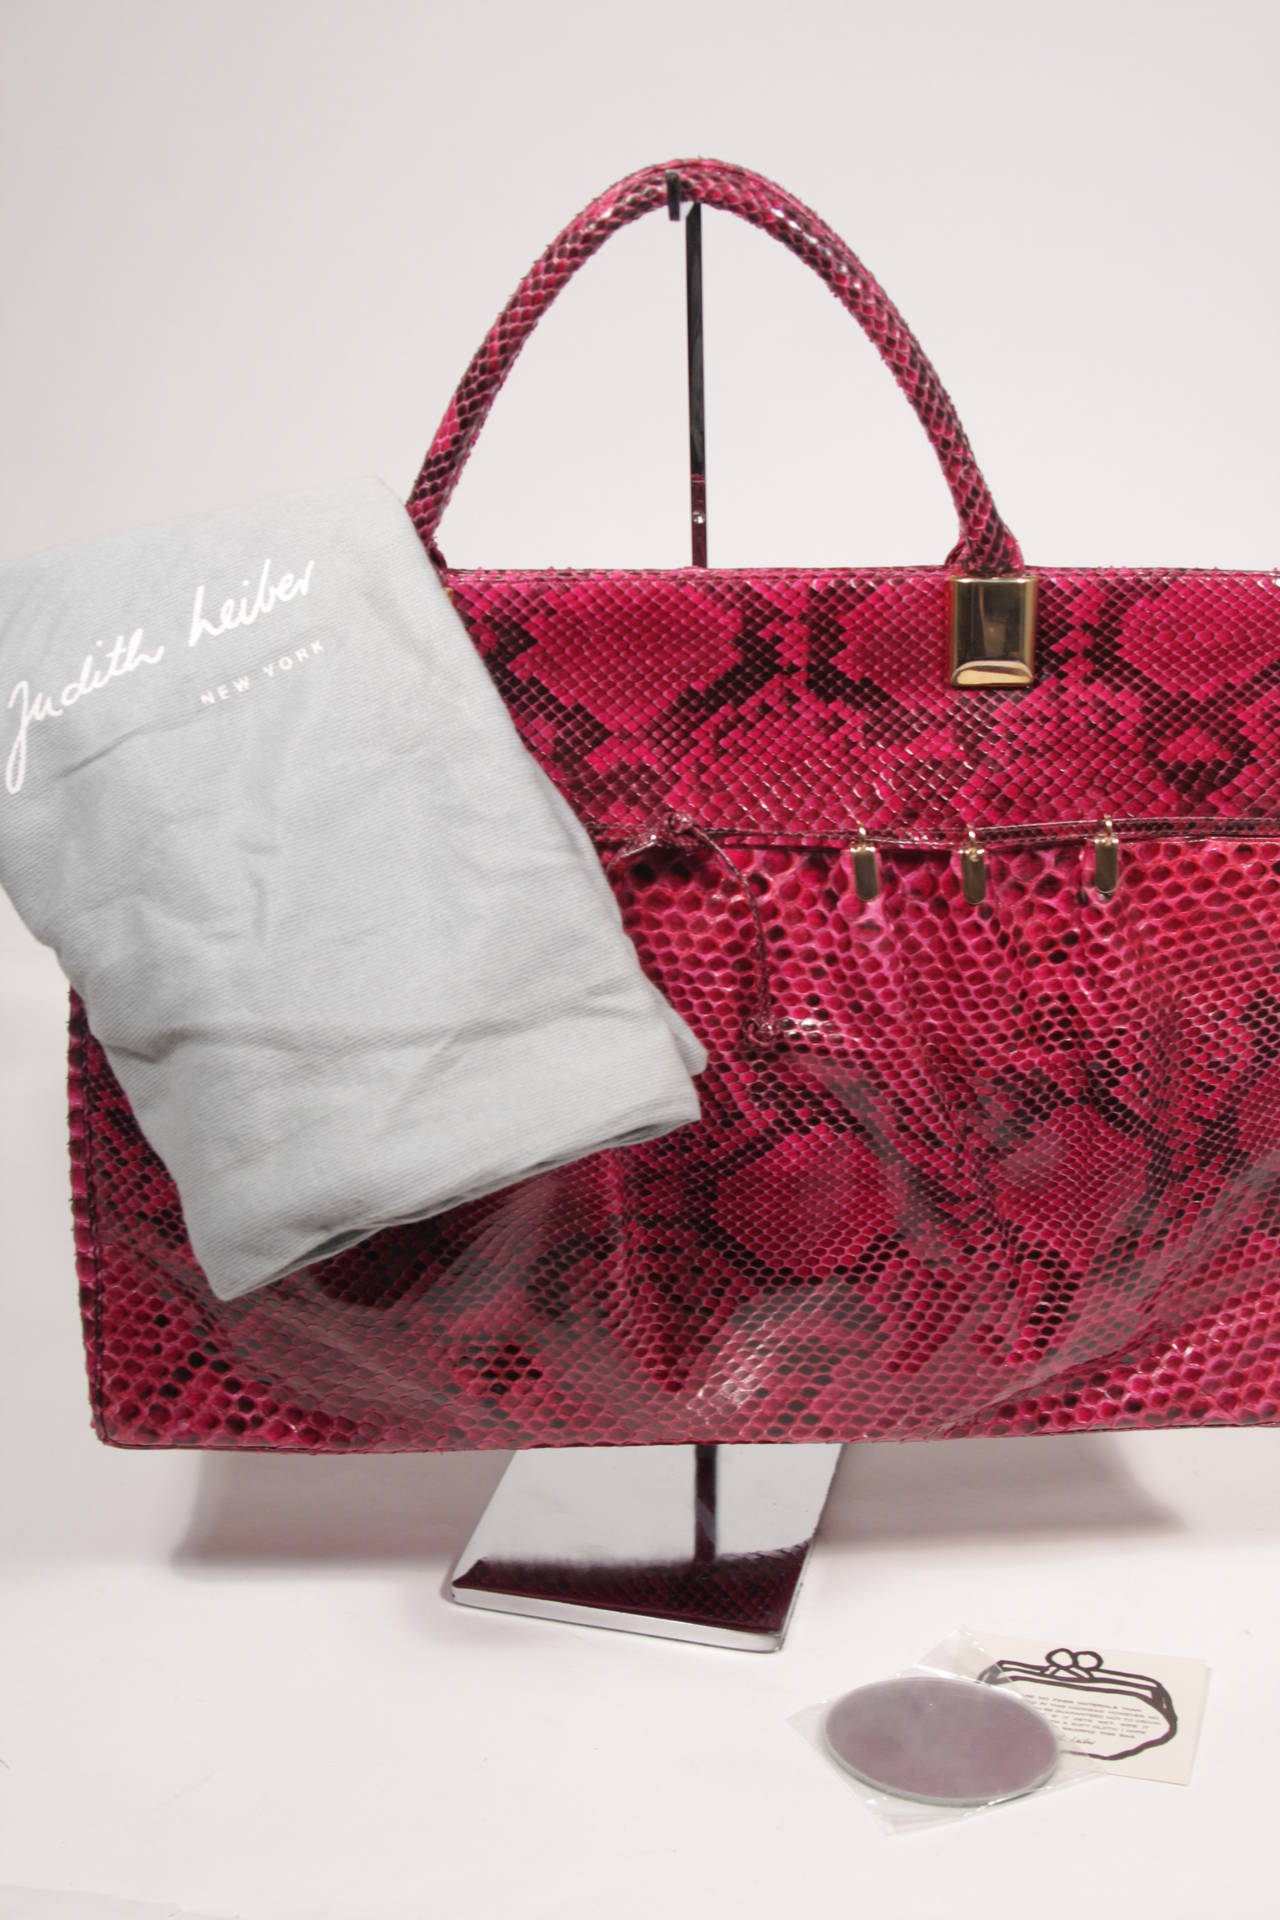 1980's Judith Leiber Extra Large Magenta Snakeskin Tote with Gold Hardware 9